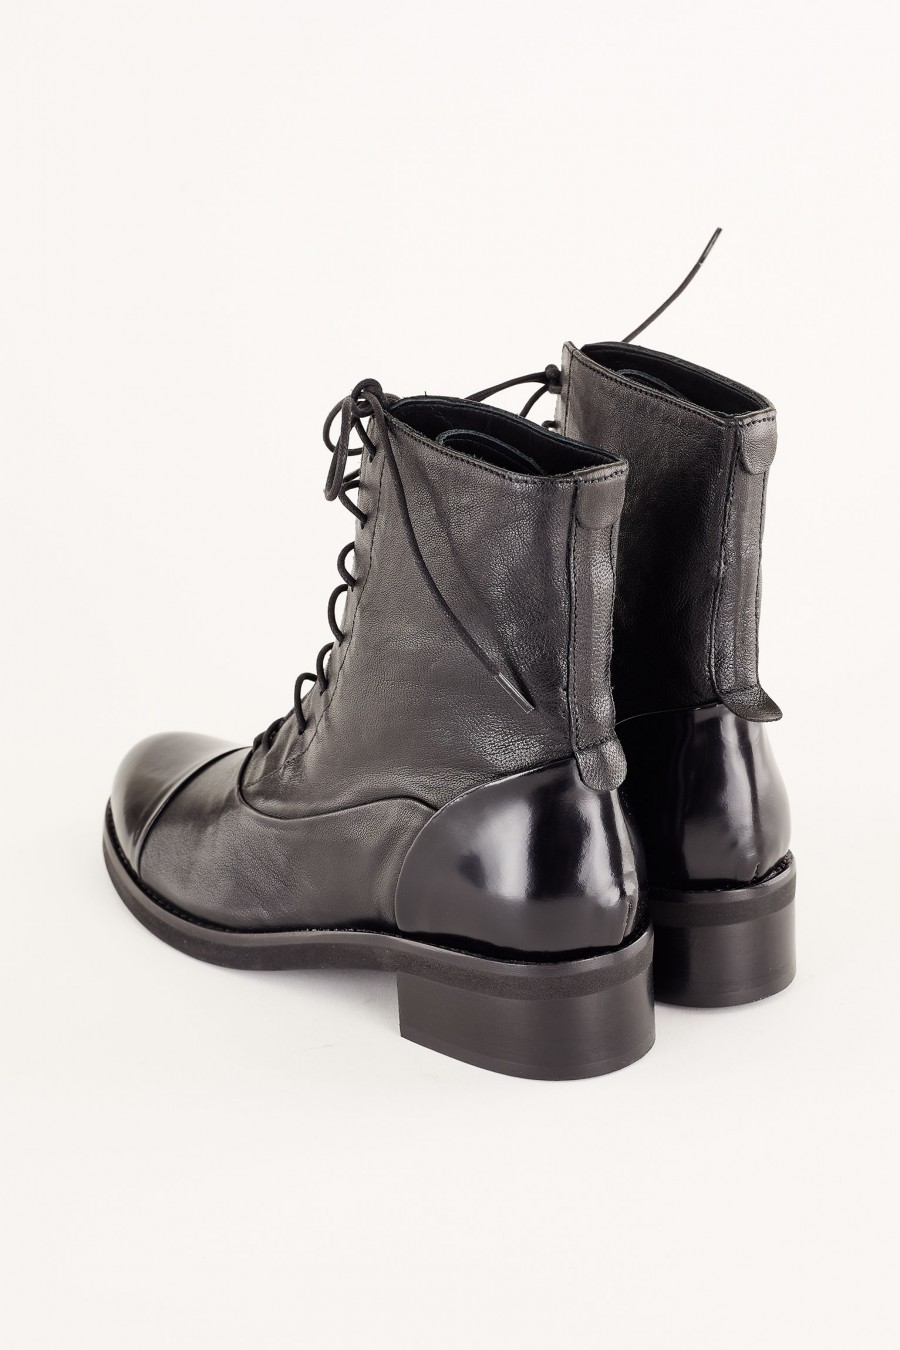 lace-up ankle boots with patent leather details